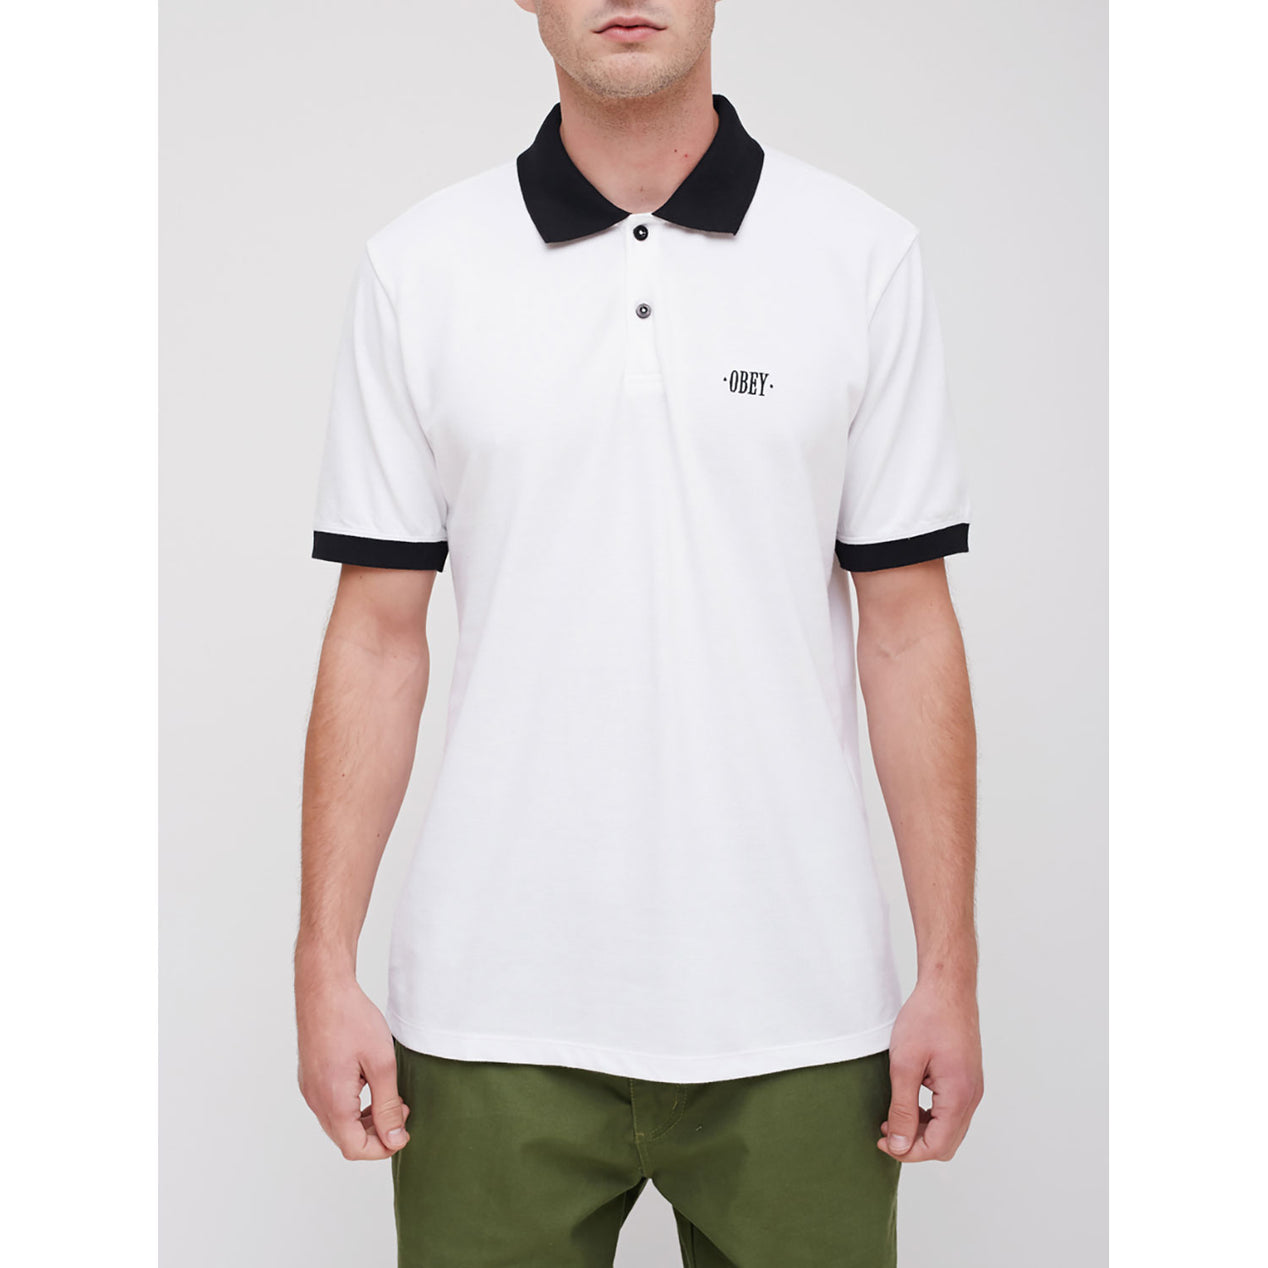 Obey Chandail Polo No Coast Homme   Altitude Sports 211ef6056882